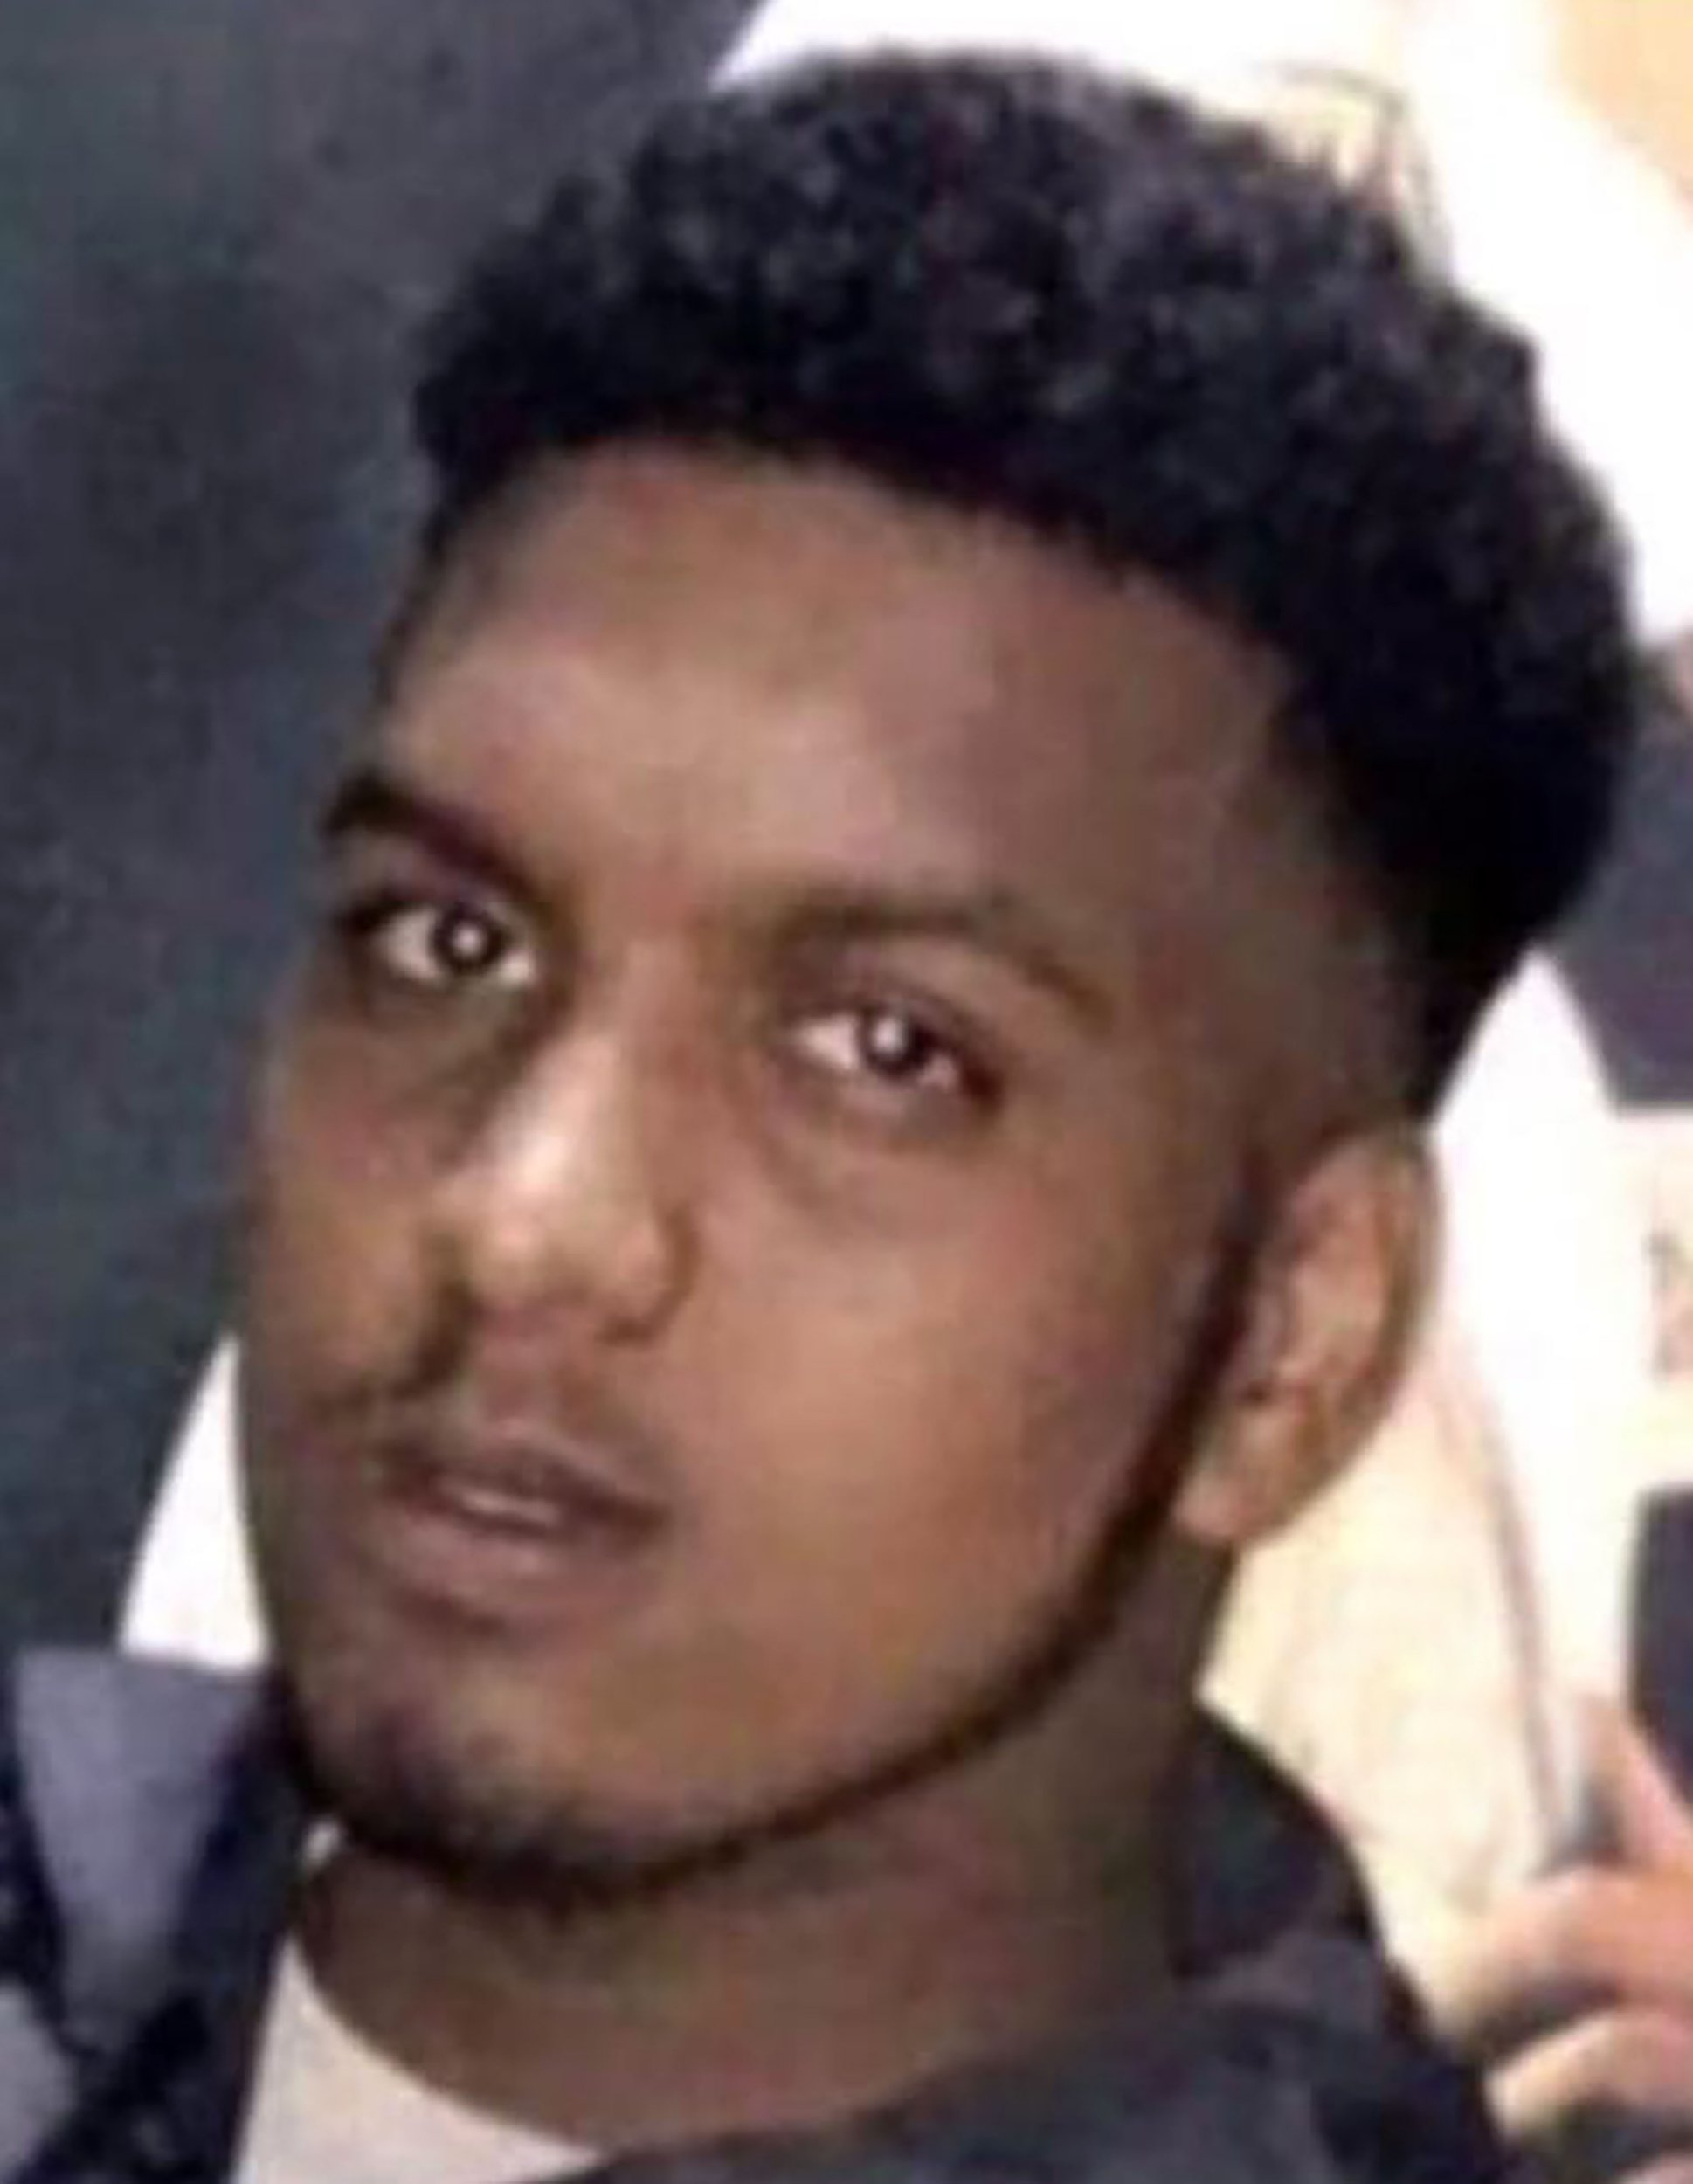 **COPYRIGHT UNKNOWN USE AT OWN RISK** **Caters has had three positive IDs on name and pic at scene.** PIC FROM Caters News - (PICTURED:Mohammed Sidali ) - A schoolboy knifed to deathoutside a sixth form college has been named.The 16-year-old was knifed outside Joseph Chamberlain College in Balsall Heath, Birmingham, just after 4pm last Wednesday (Feb 13) before dying in hospital two days later after his life support was switched off.The boy has now been named locally as Mohammed Sidali, with donations in his honour topping 3,500 in two days. Police have charged a 16-year-old boy, who cannot be named for legal reasons, over the death.ENDS